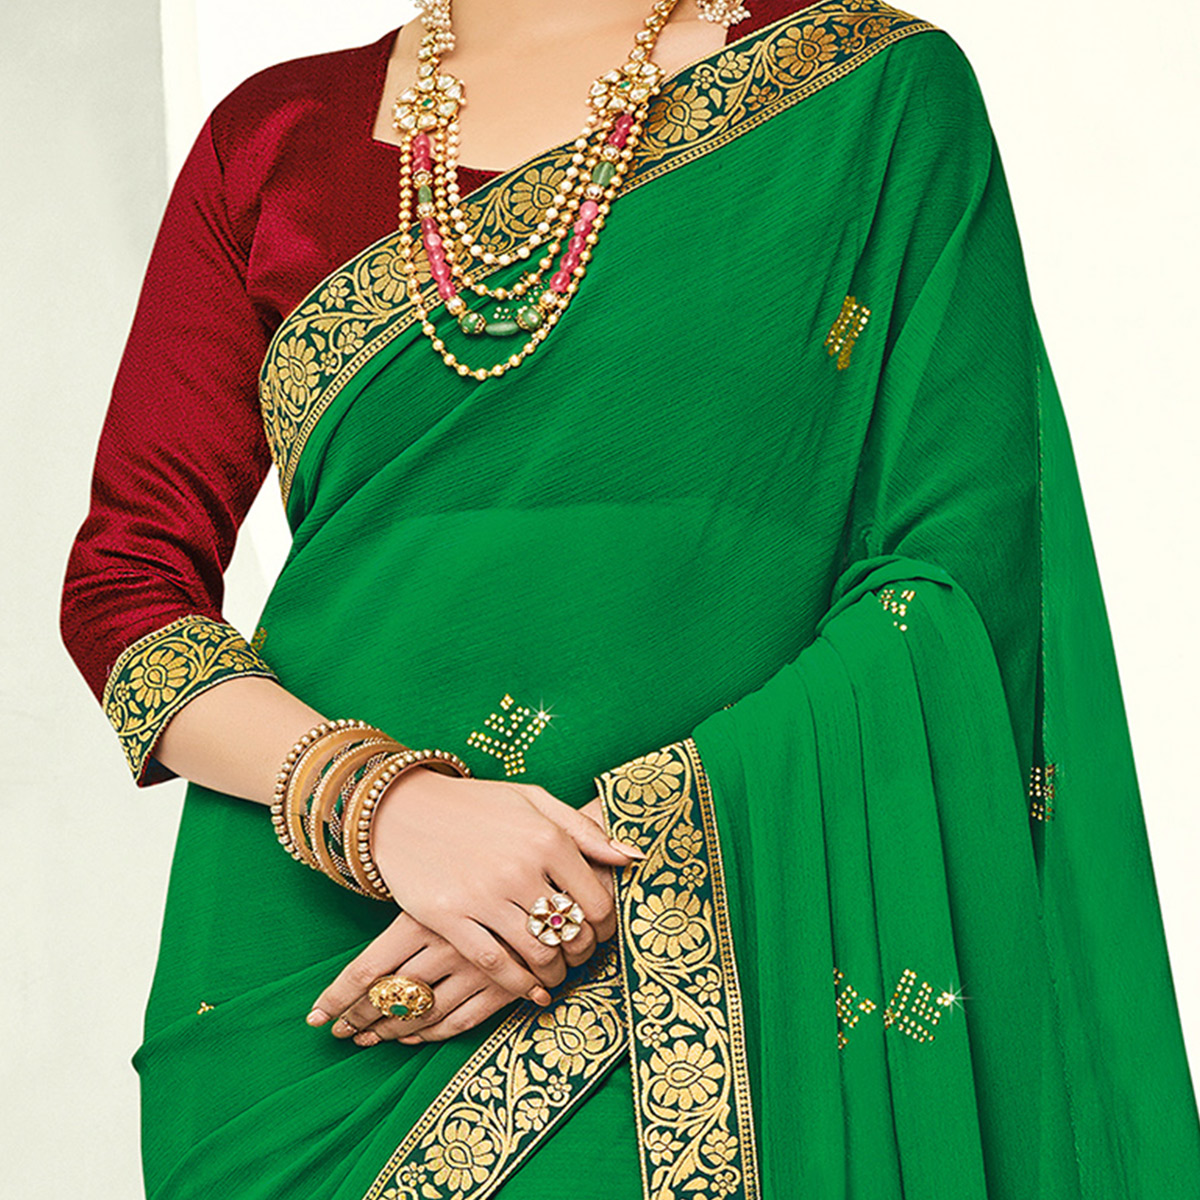 Indian Women Green Colored Festive Wear Woven Chiffon Saree